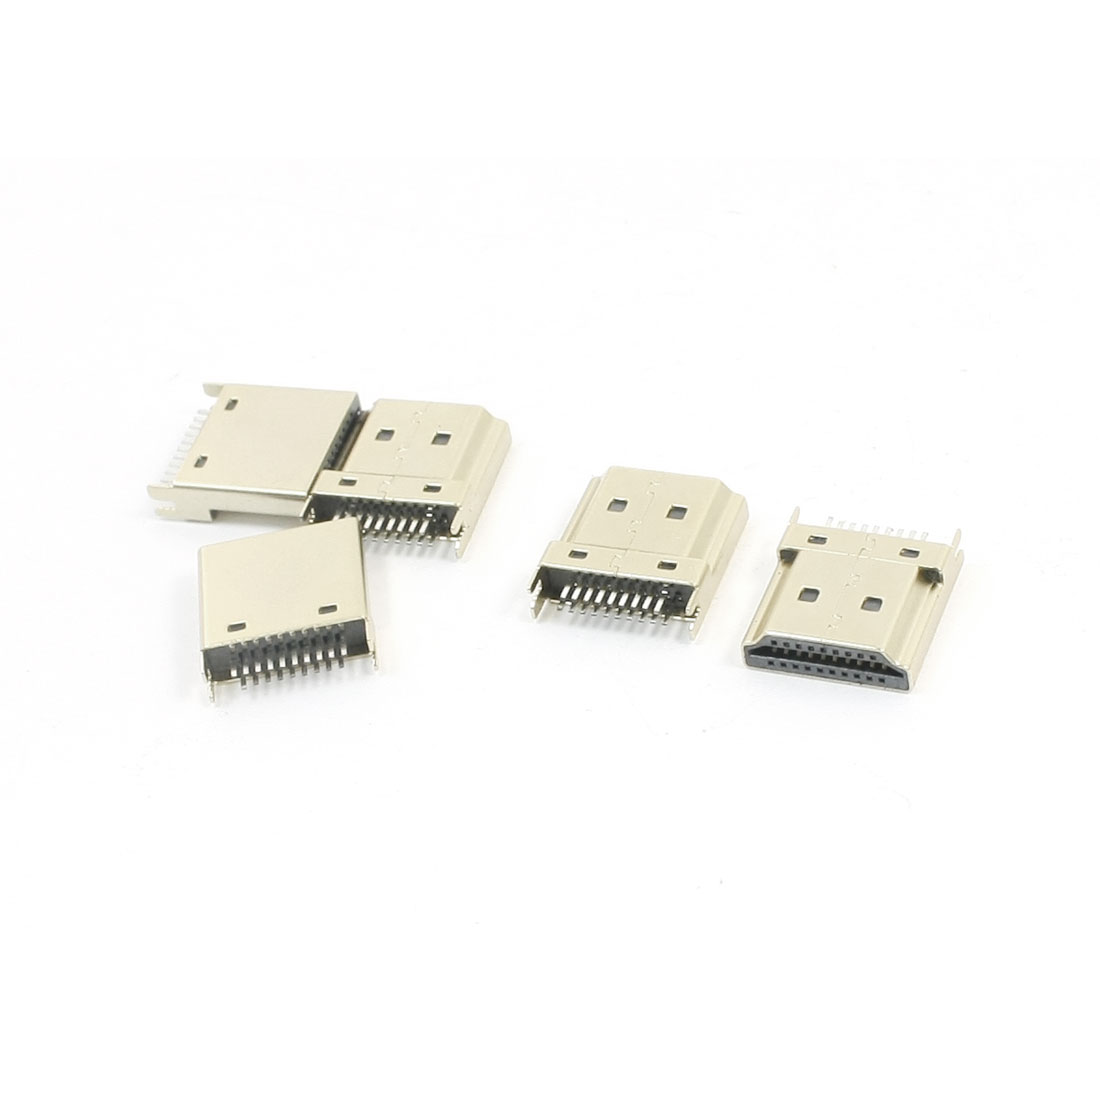 5pcs 1.0mm Spacing Gold Tone Mini 19Pin HDMI Female Connector SMT 180 Degree